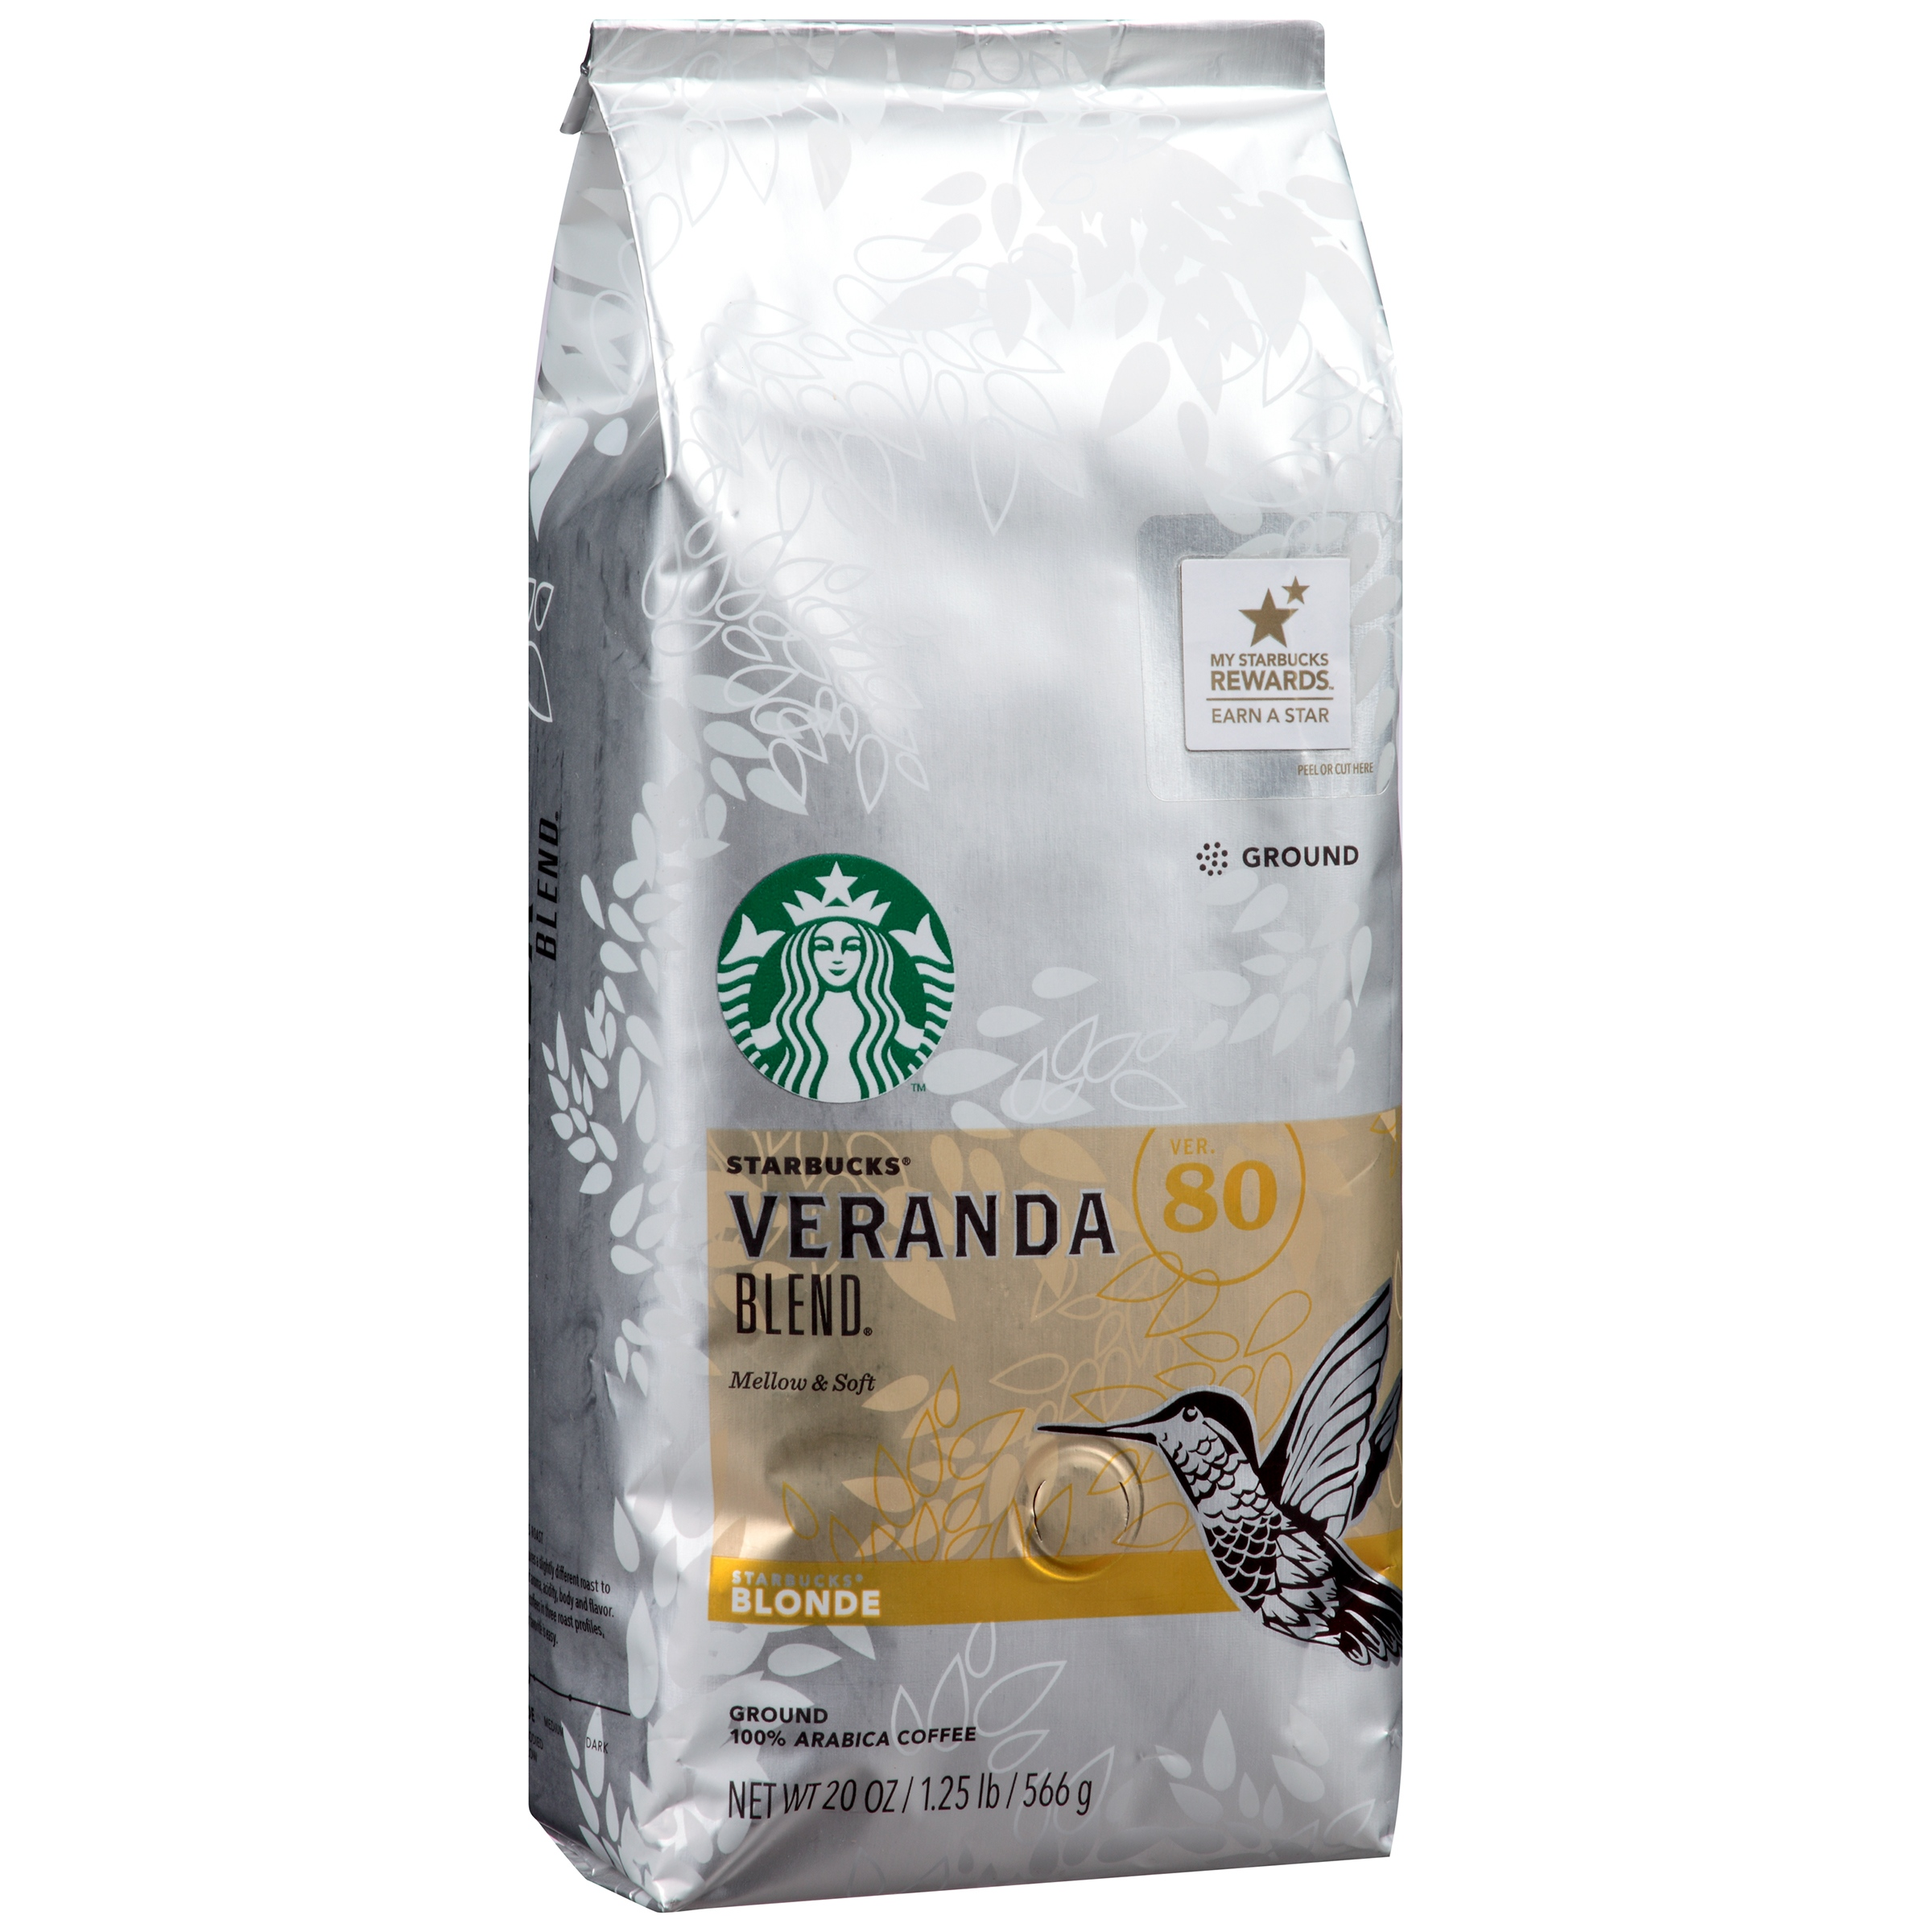 Starbucks Blonde Roast Ground Coffee Veranda Blend, 20.0 OZ by STARBUCKS COFFEE COMPANY